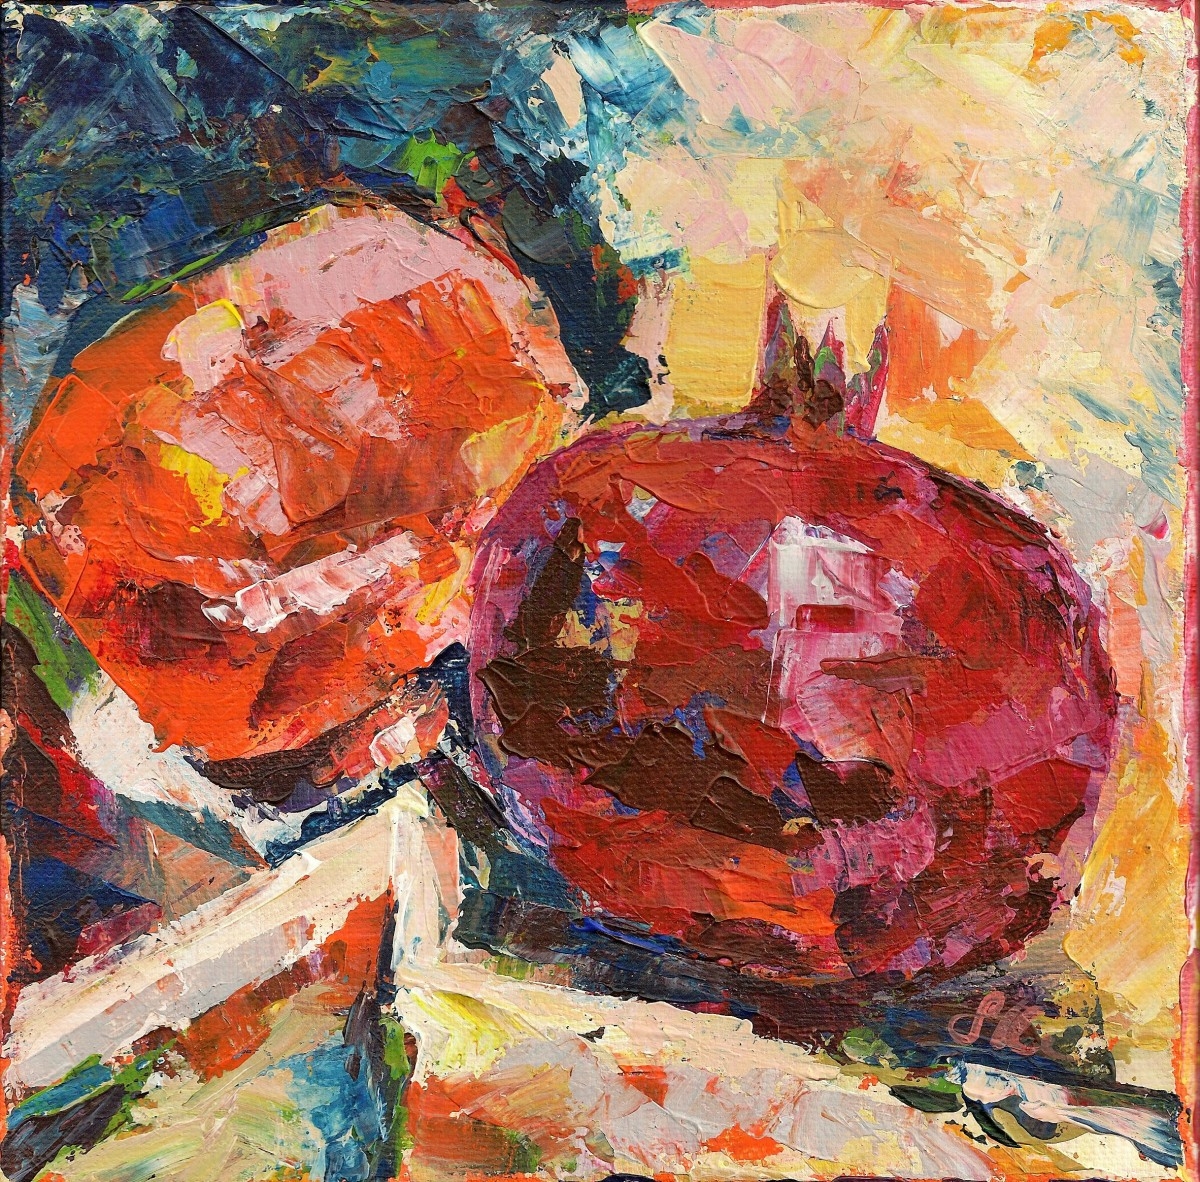 Persimmon and Pomegranate by Sonya Kleshik